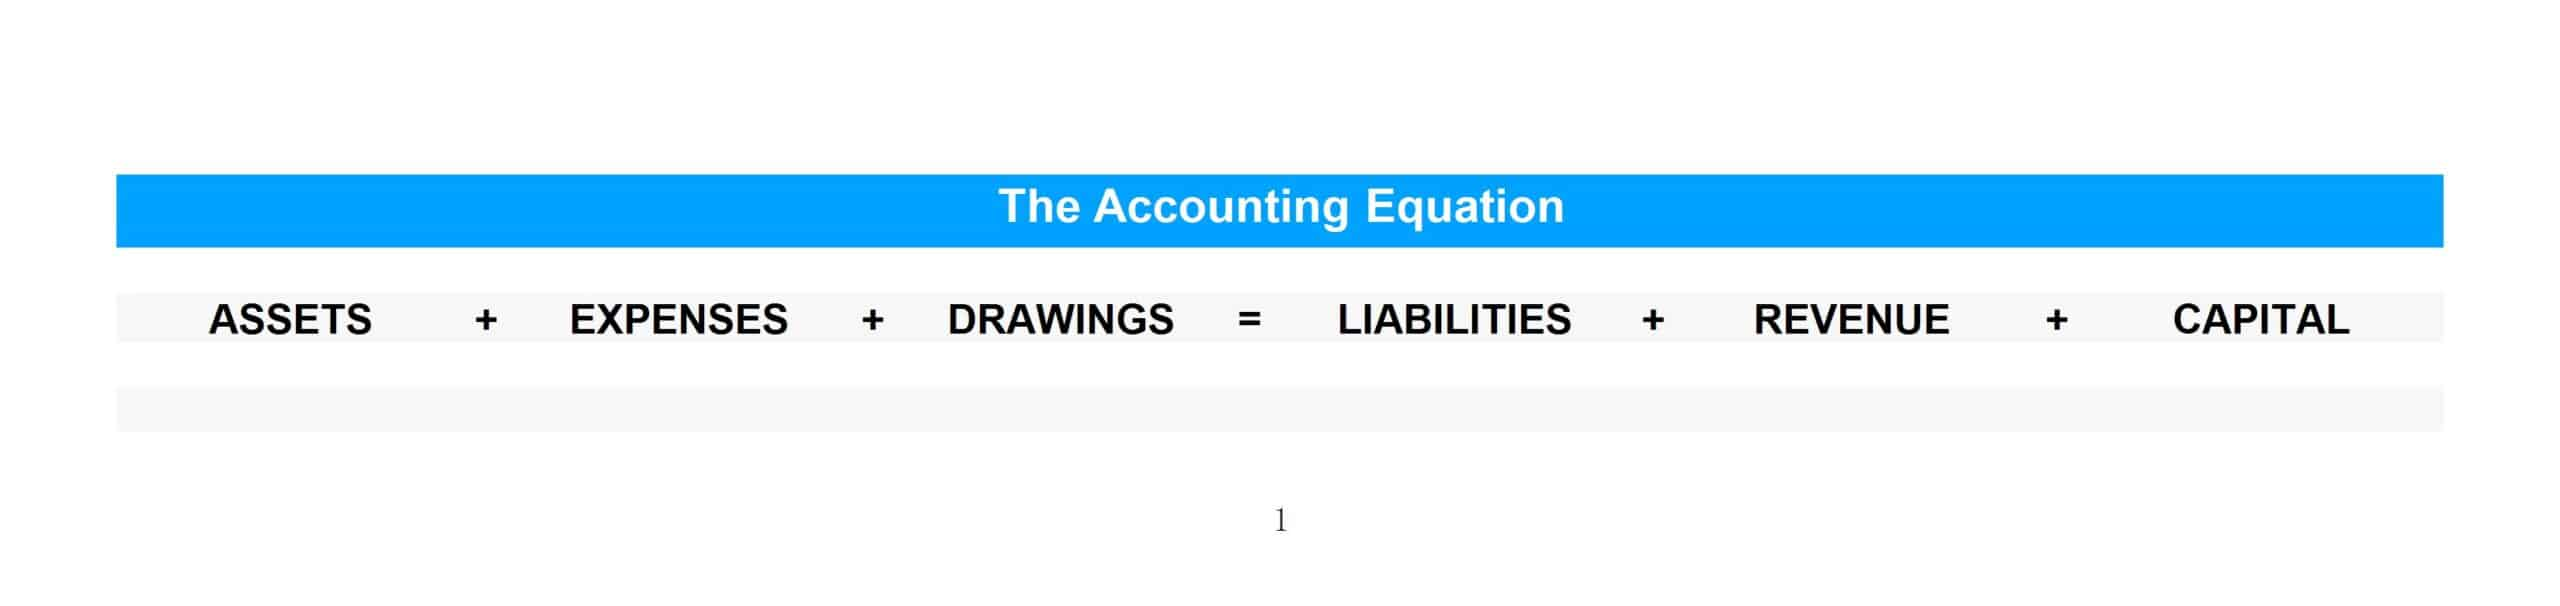 The accounting equation demonstrates the six account classes used in accounting.